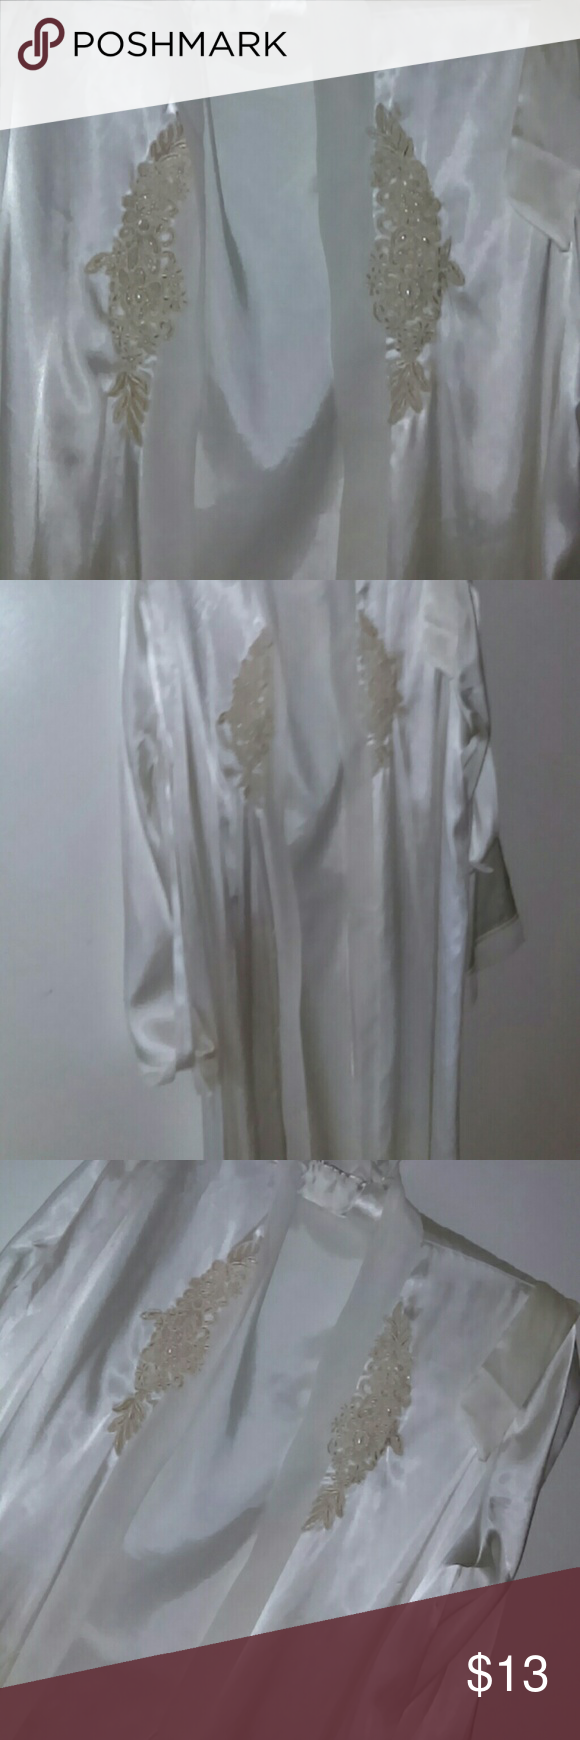 White Silky Like Robe Very nice robe with lace decor. Size S/M. In excellent condition. Any questions please ask. Thanks for viewing. Happy poshing! Intimates & Sleepwear Robes